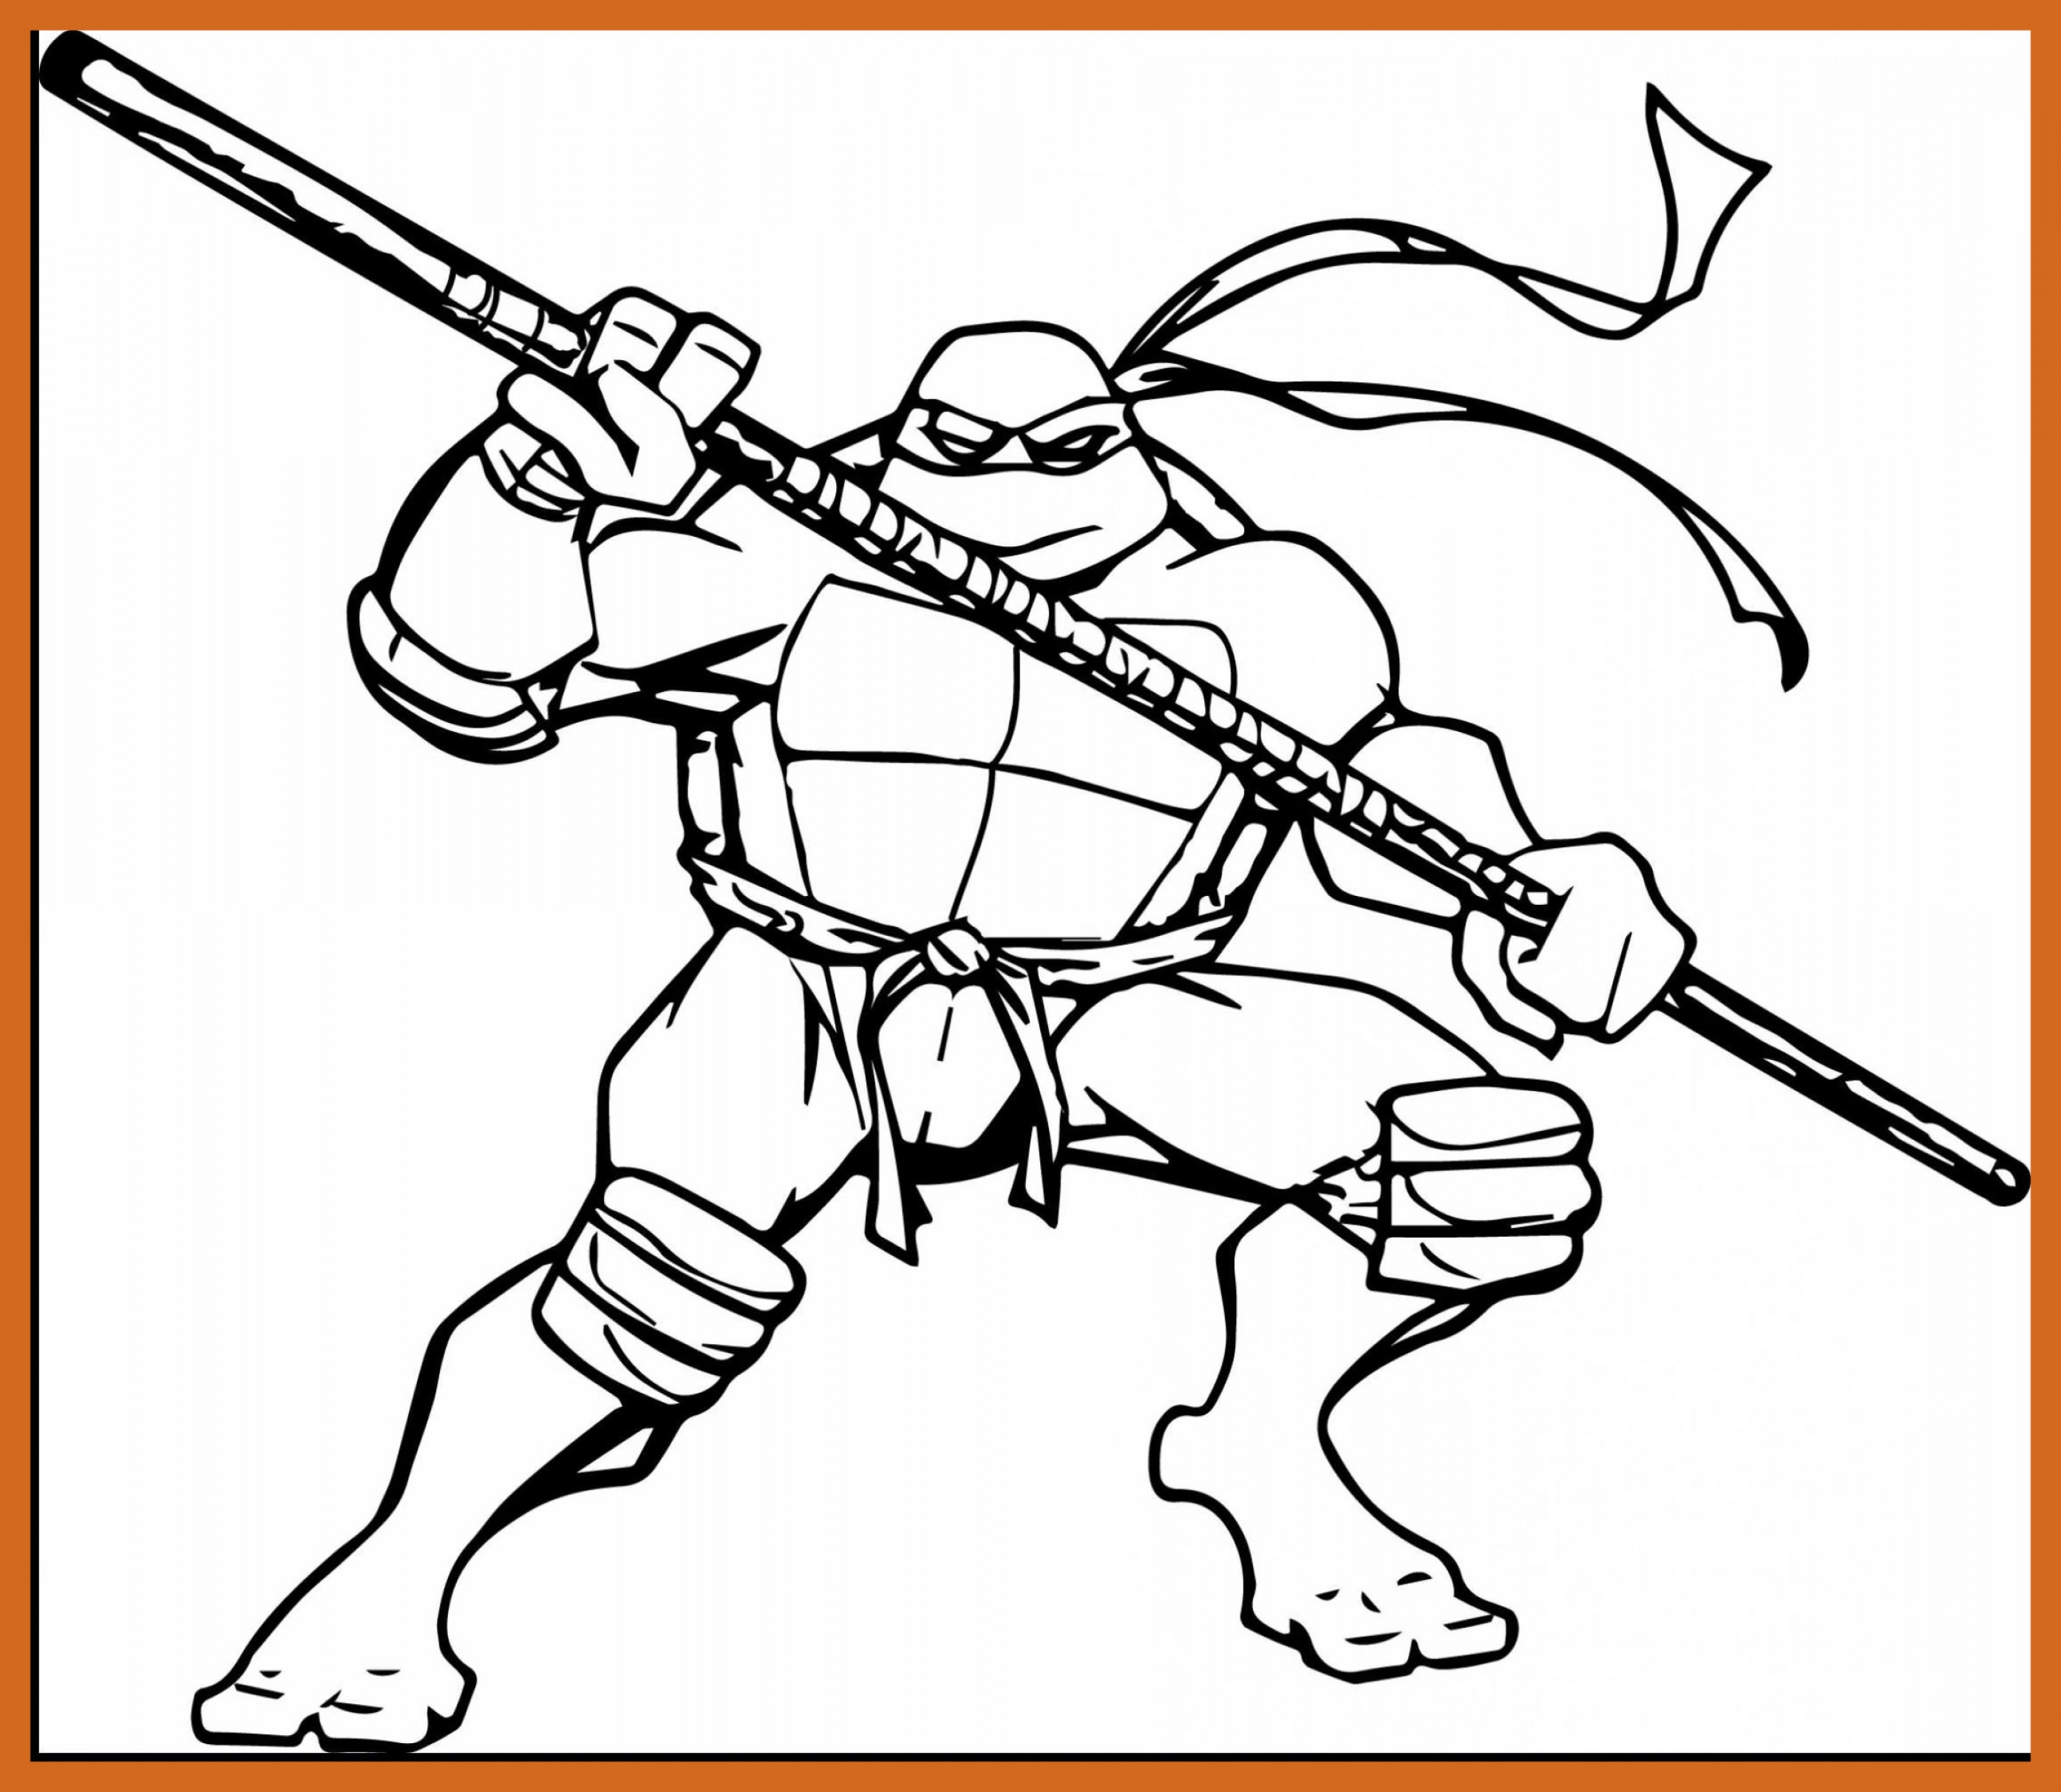 Teenage Mutant Ninja Turtles Line Vector: Appealing Teenage Mutant Ninja Turtles Tmnt Coloring Pages How To Draw For Pics Drawing Step By Concept And Out Of Shadow Pc Popular